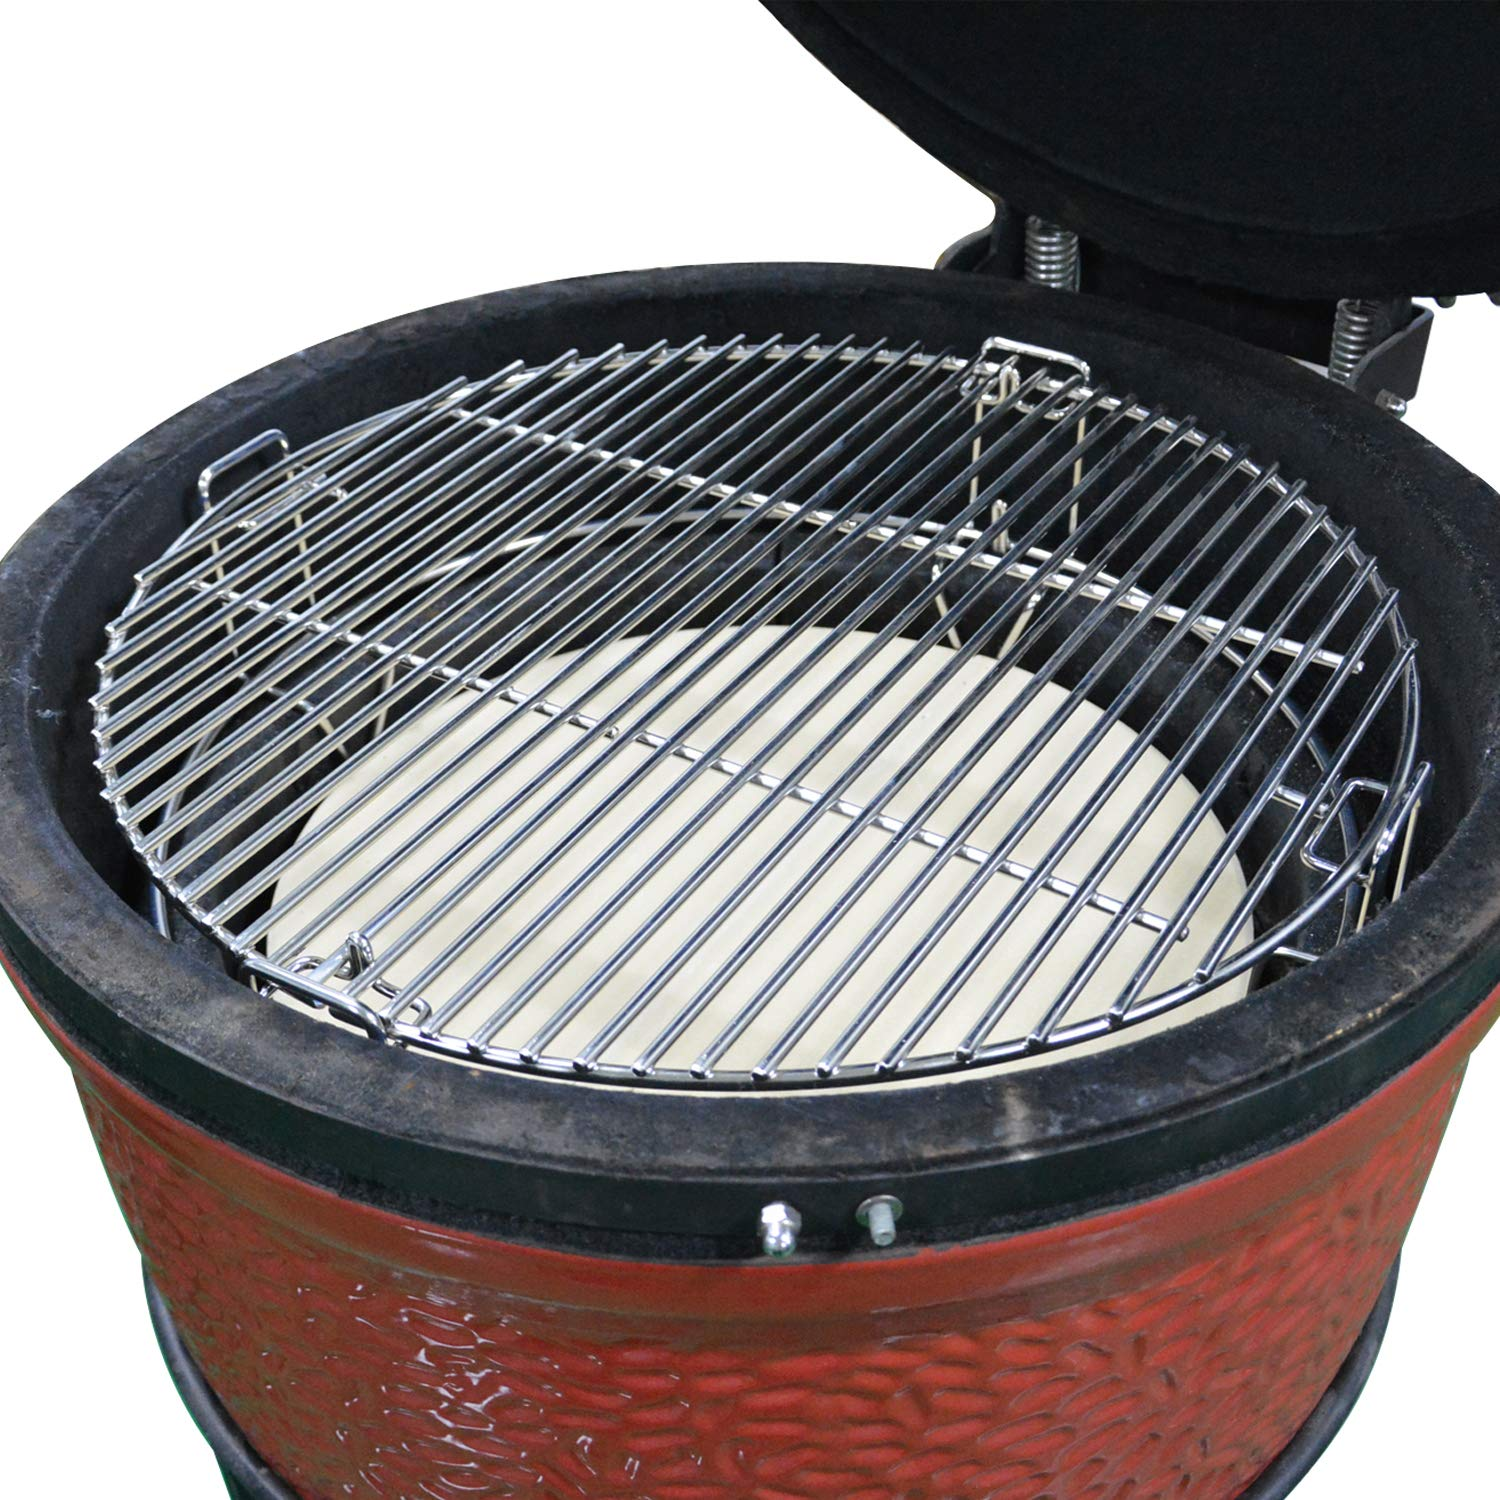 Onlyfire Cooking System Fit for Large Big Green Egg, Kamado Joe Classic,  Pit Boss, Louisiana, Large Grill Dome, and Other Kamado Grill